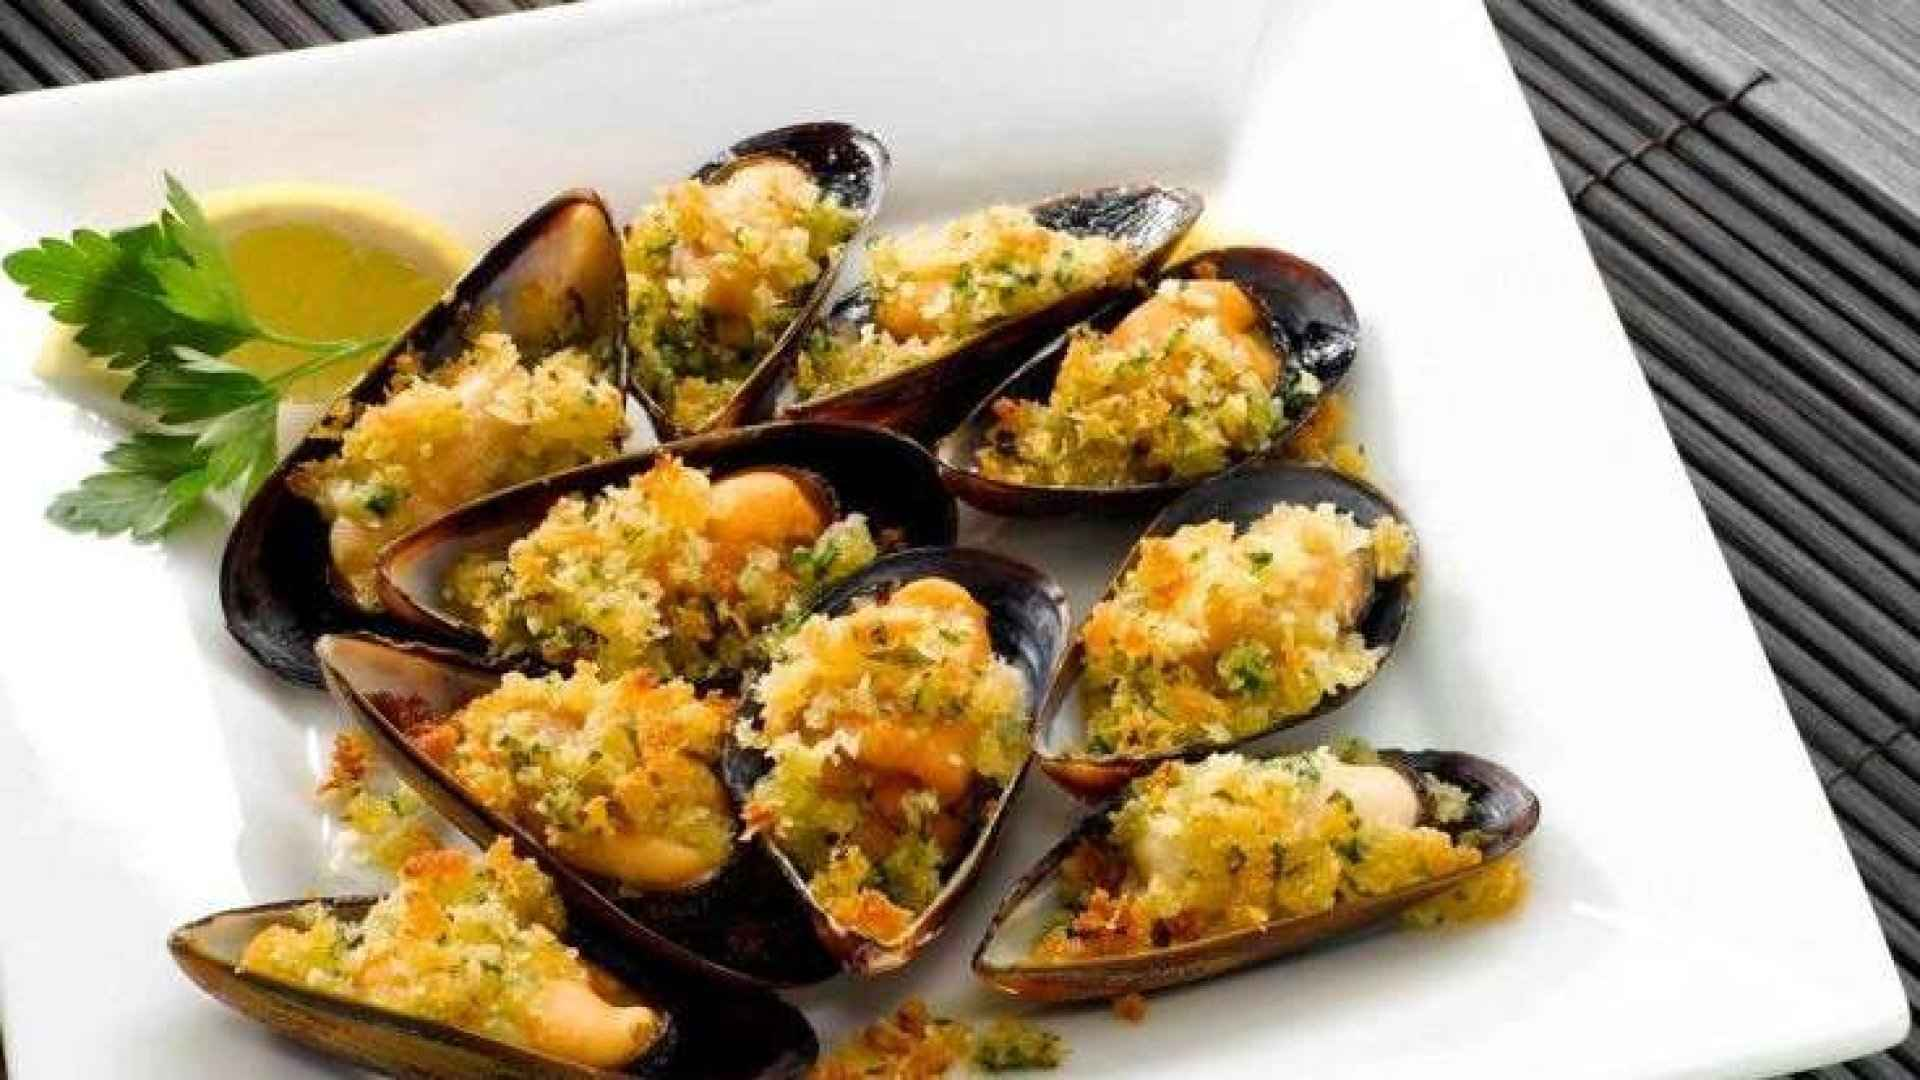 Baked mussels topped with cheese